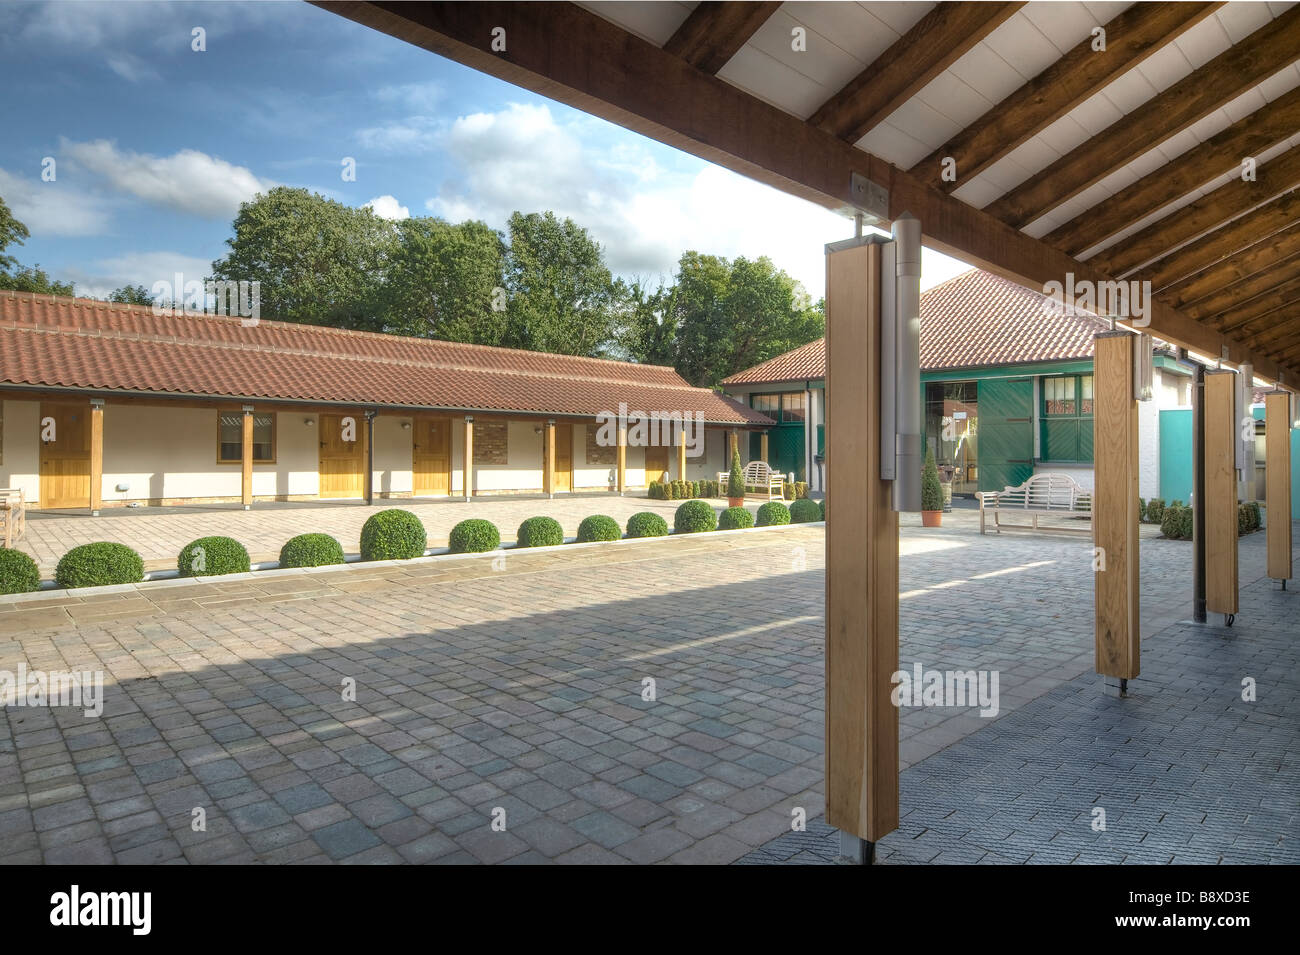 Enclosed landscaped courtyard - Stock Image